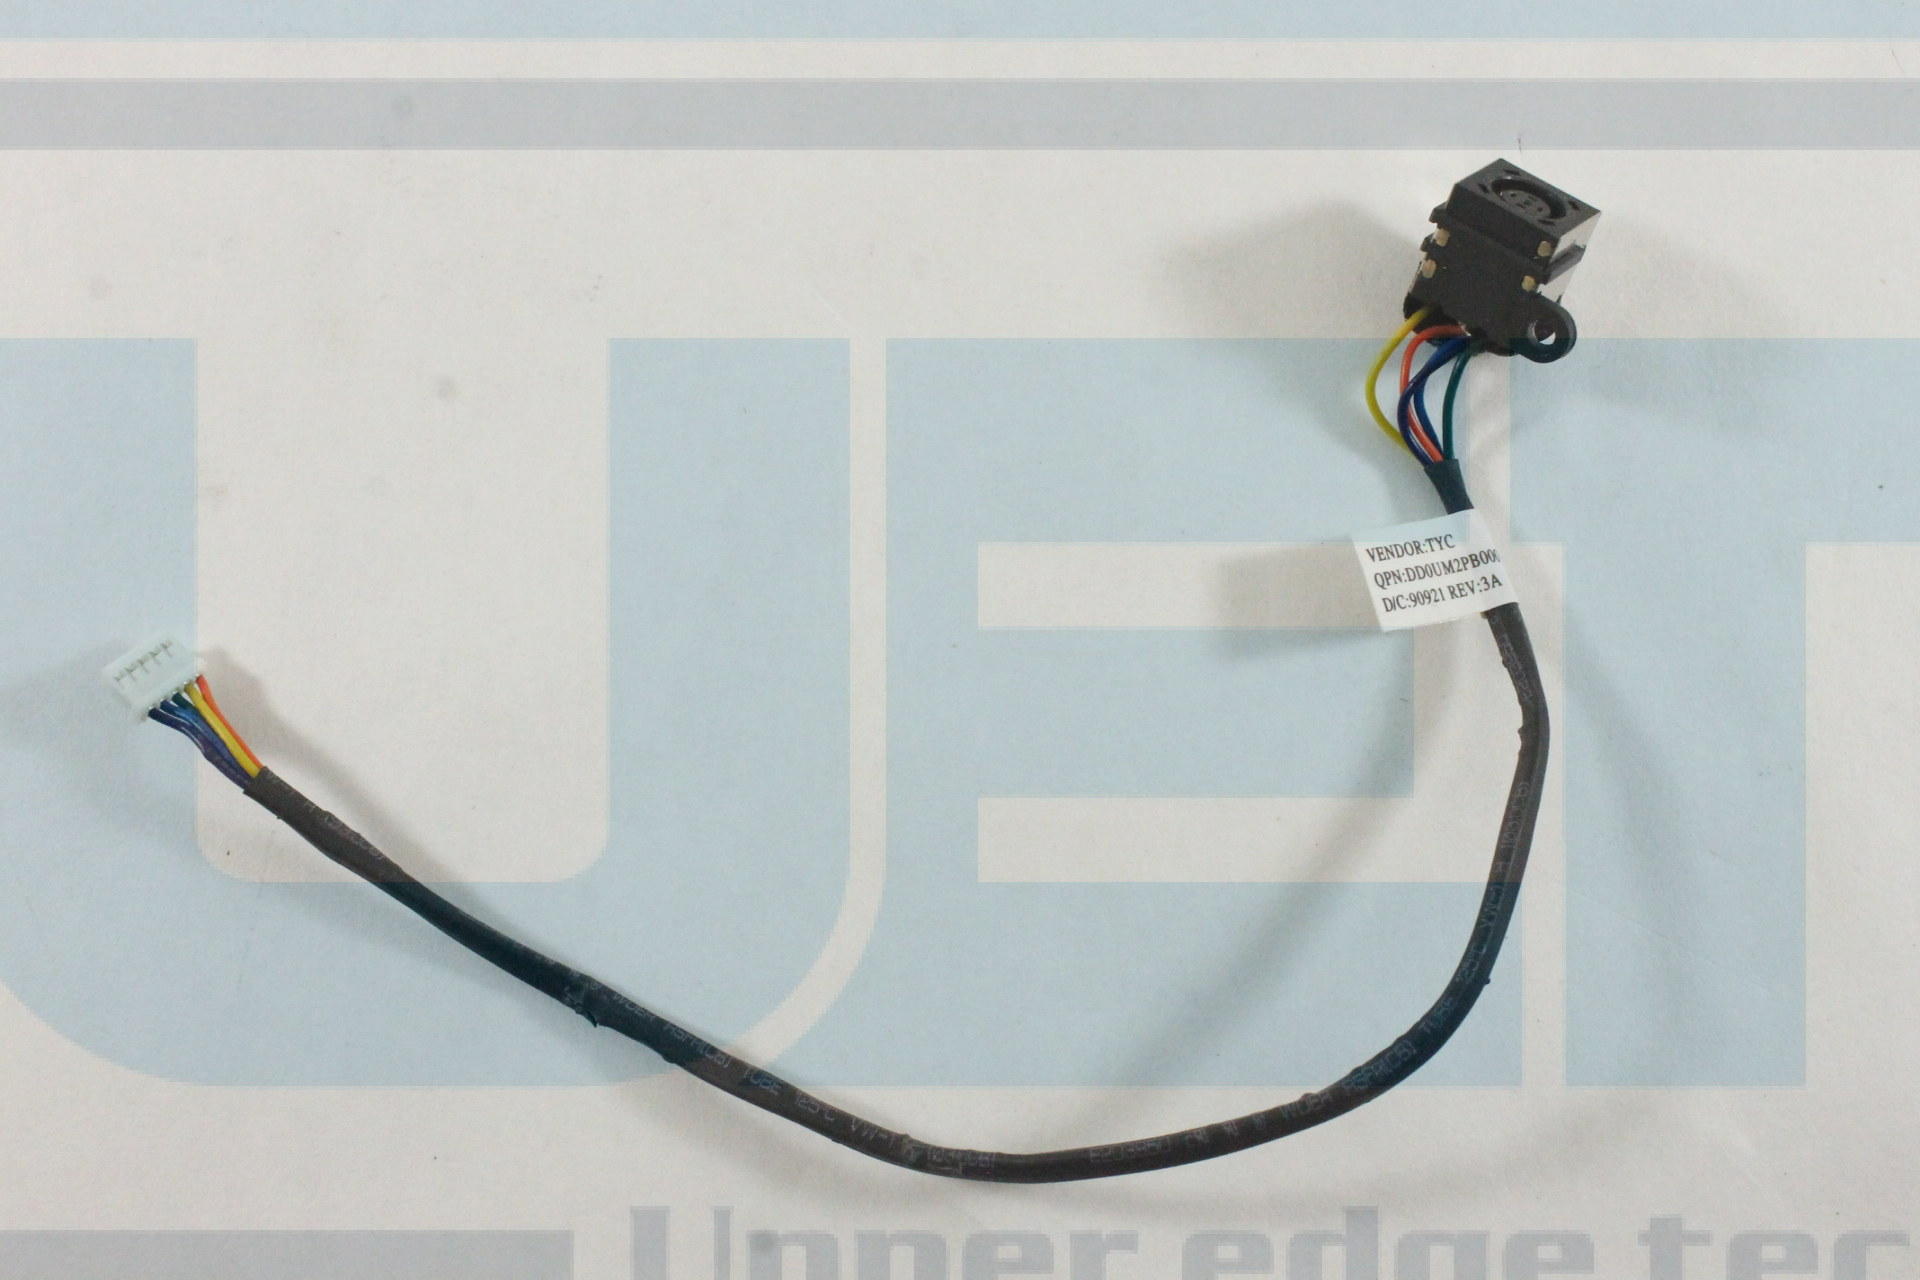 Dell Oem Inspiron 1570 Laptop Dc Jack Cable Dd0um2pb000 Wiring Item Condition